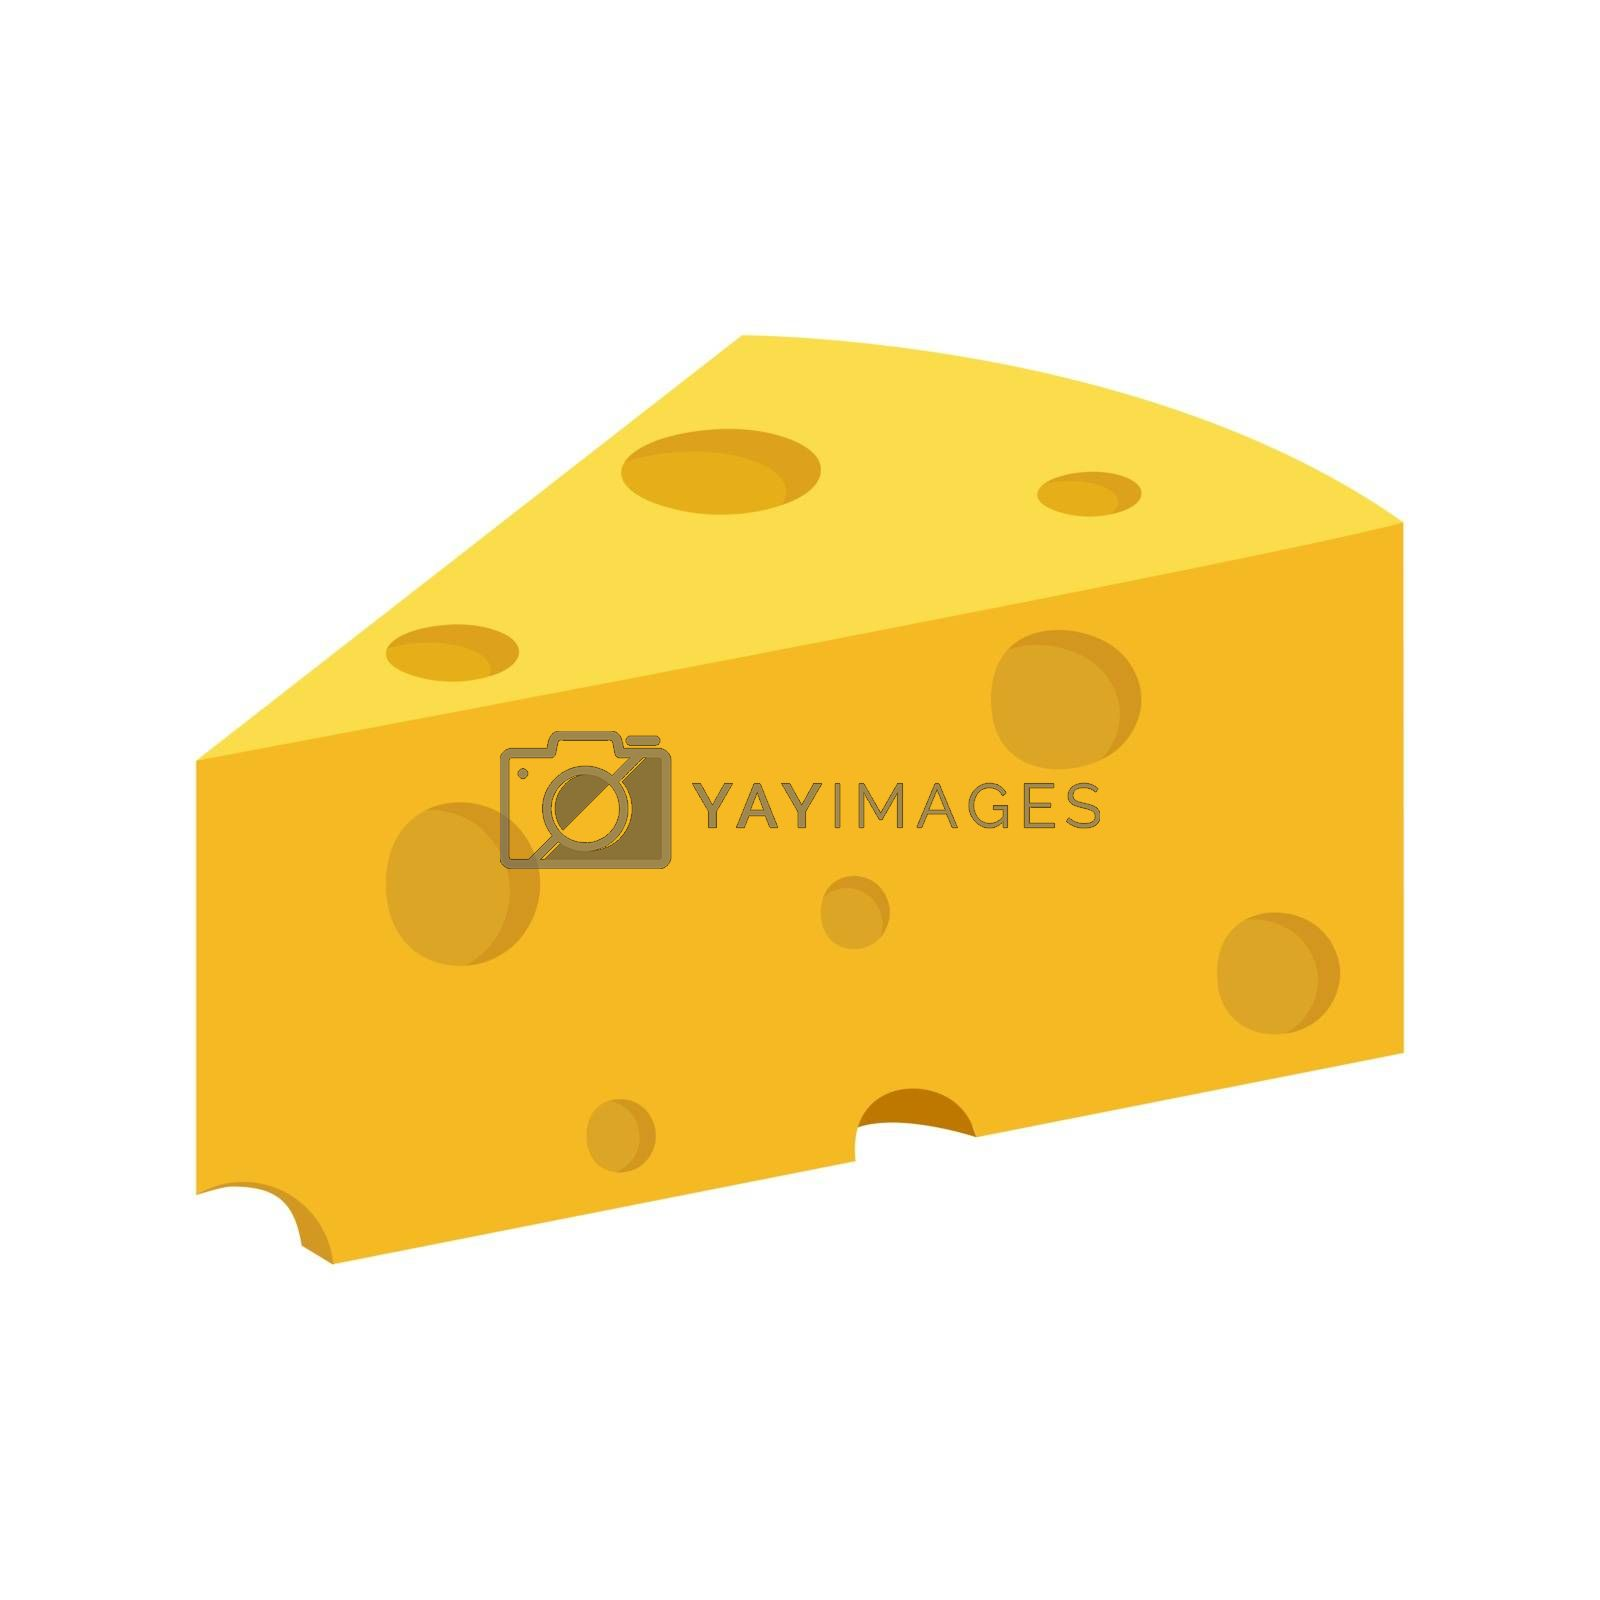 piece of cheese, a dairy product, a simple color image